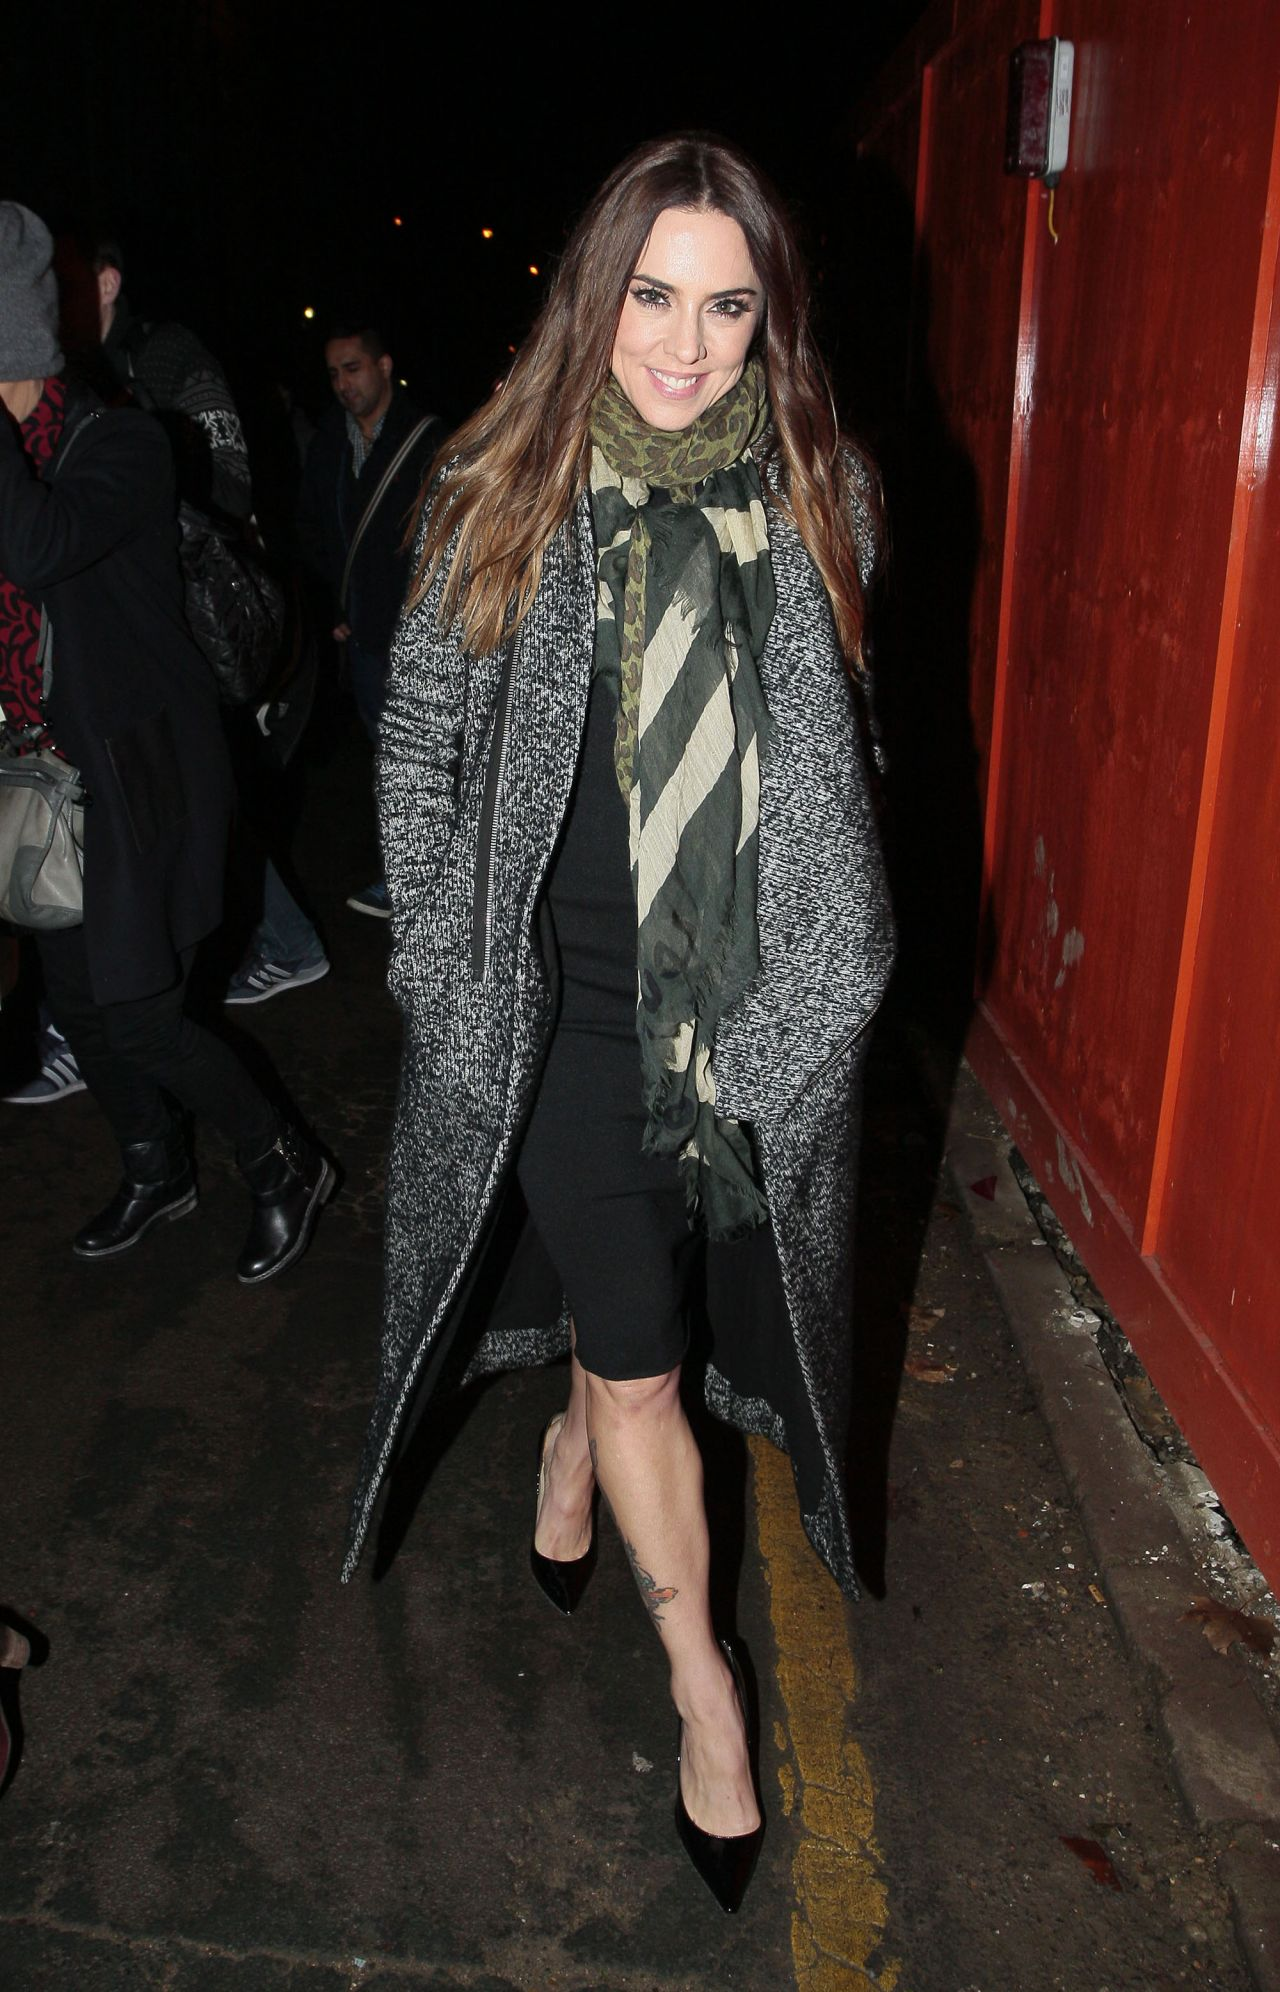 Melanie Chisholm Street Style - Leaving the Union Chapel in London - December 2013